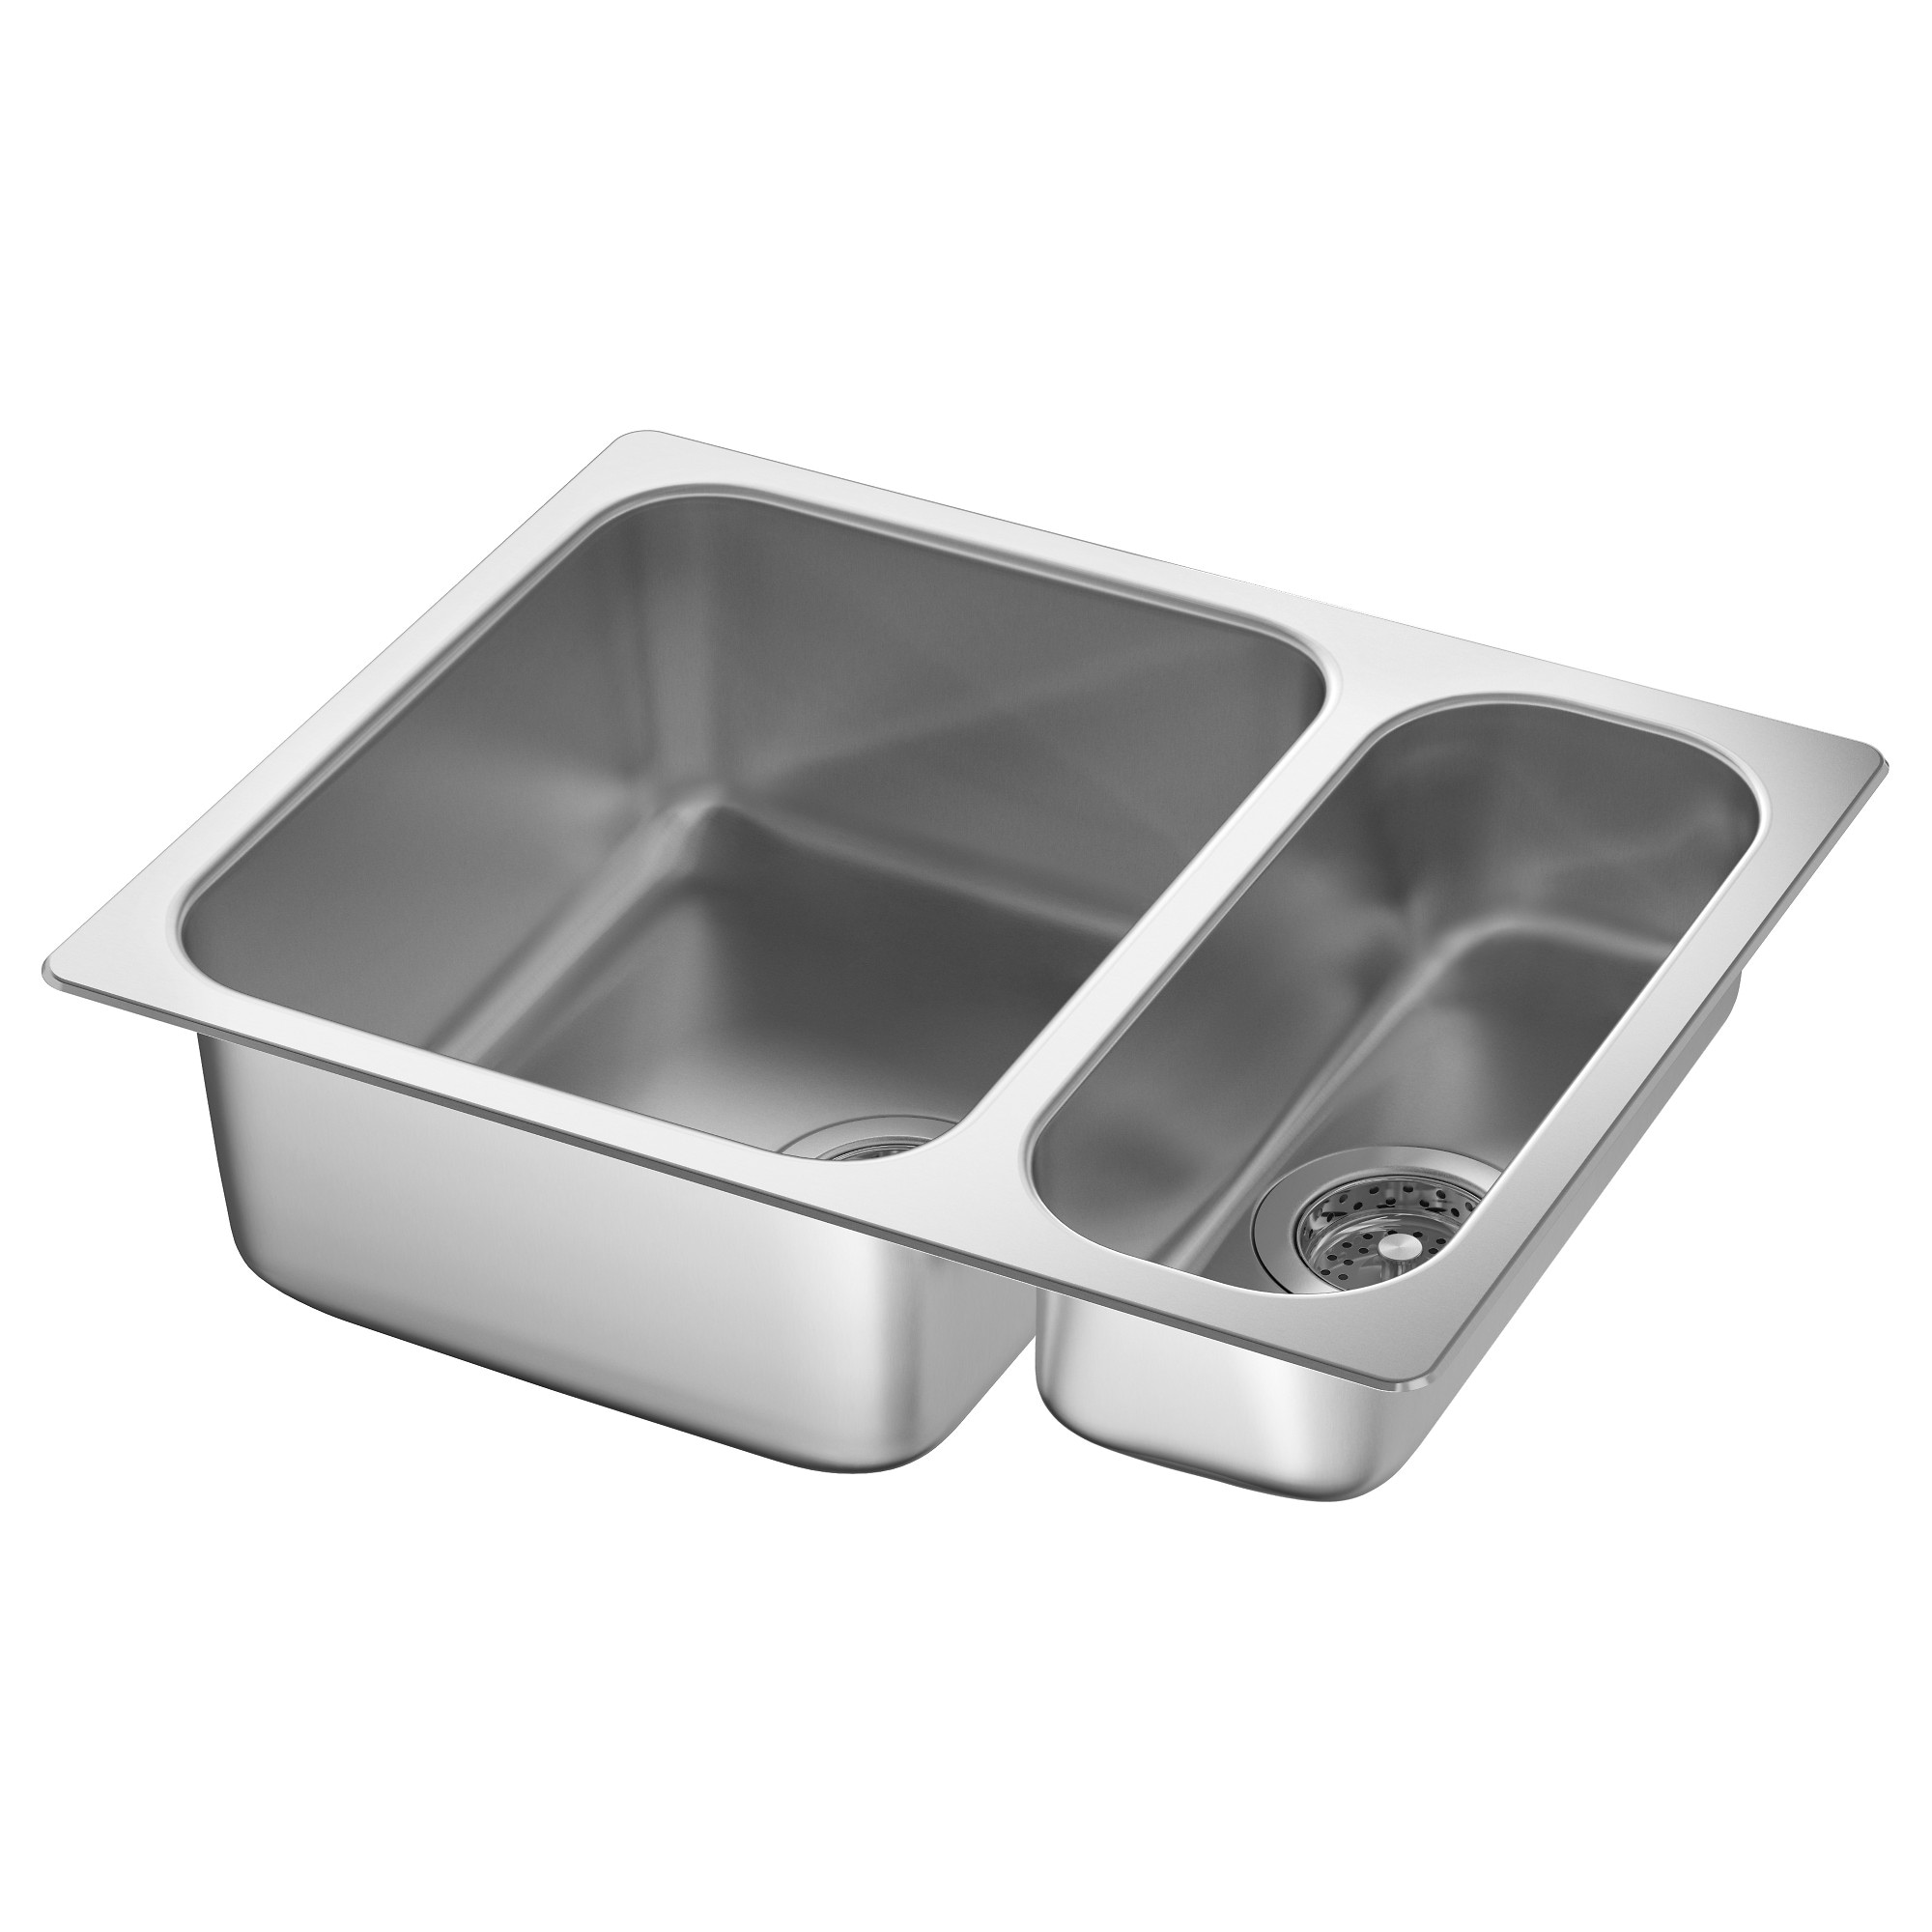 HILLESJÖN 1 1/2 Bowl Dual Mount Sink, Stainless Steel Cut Out Measurement